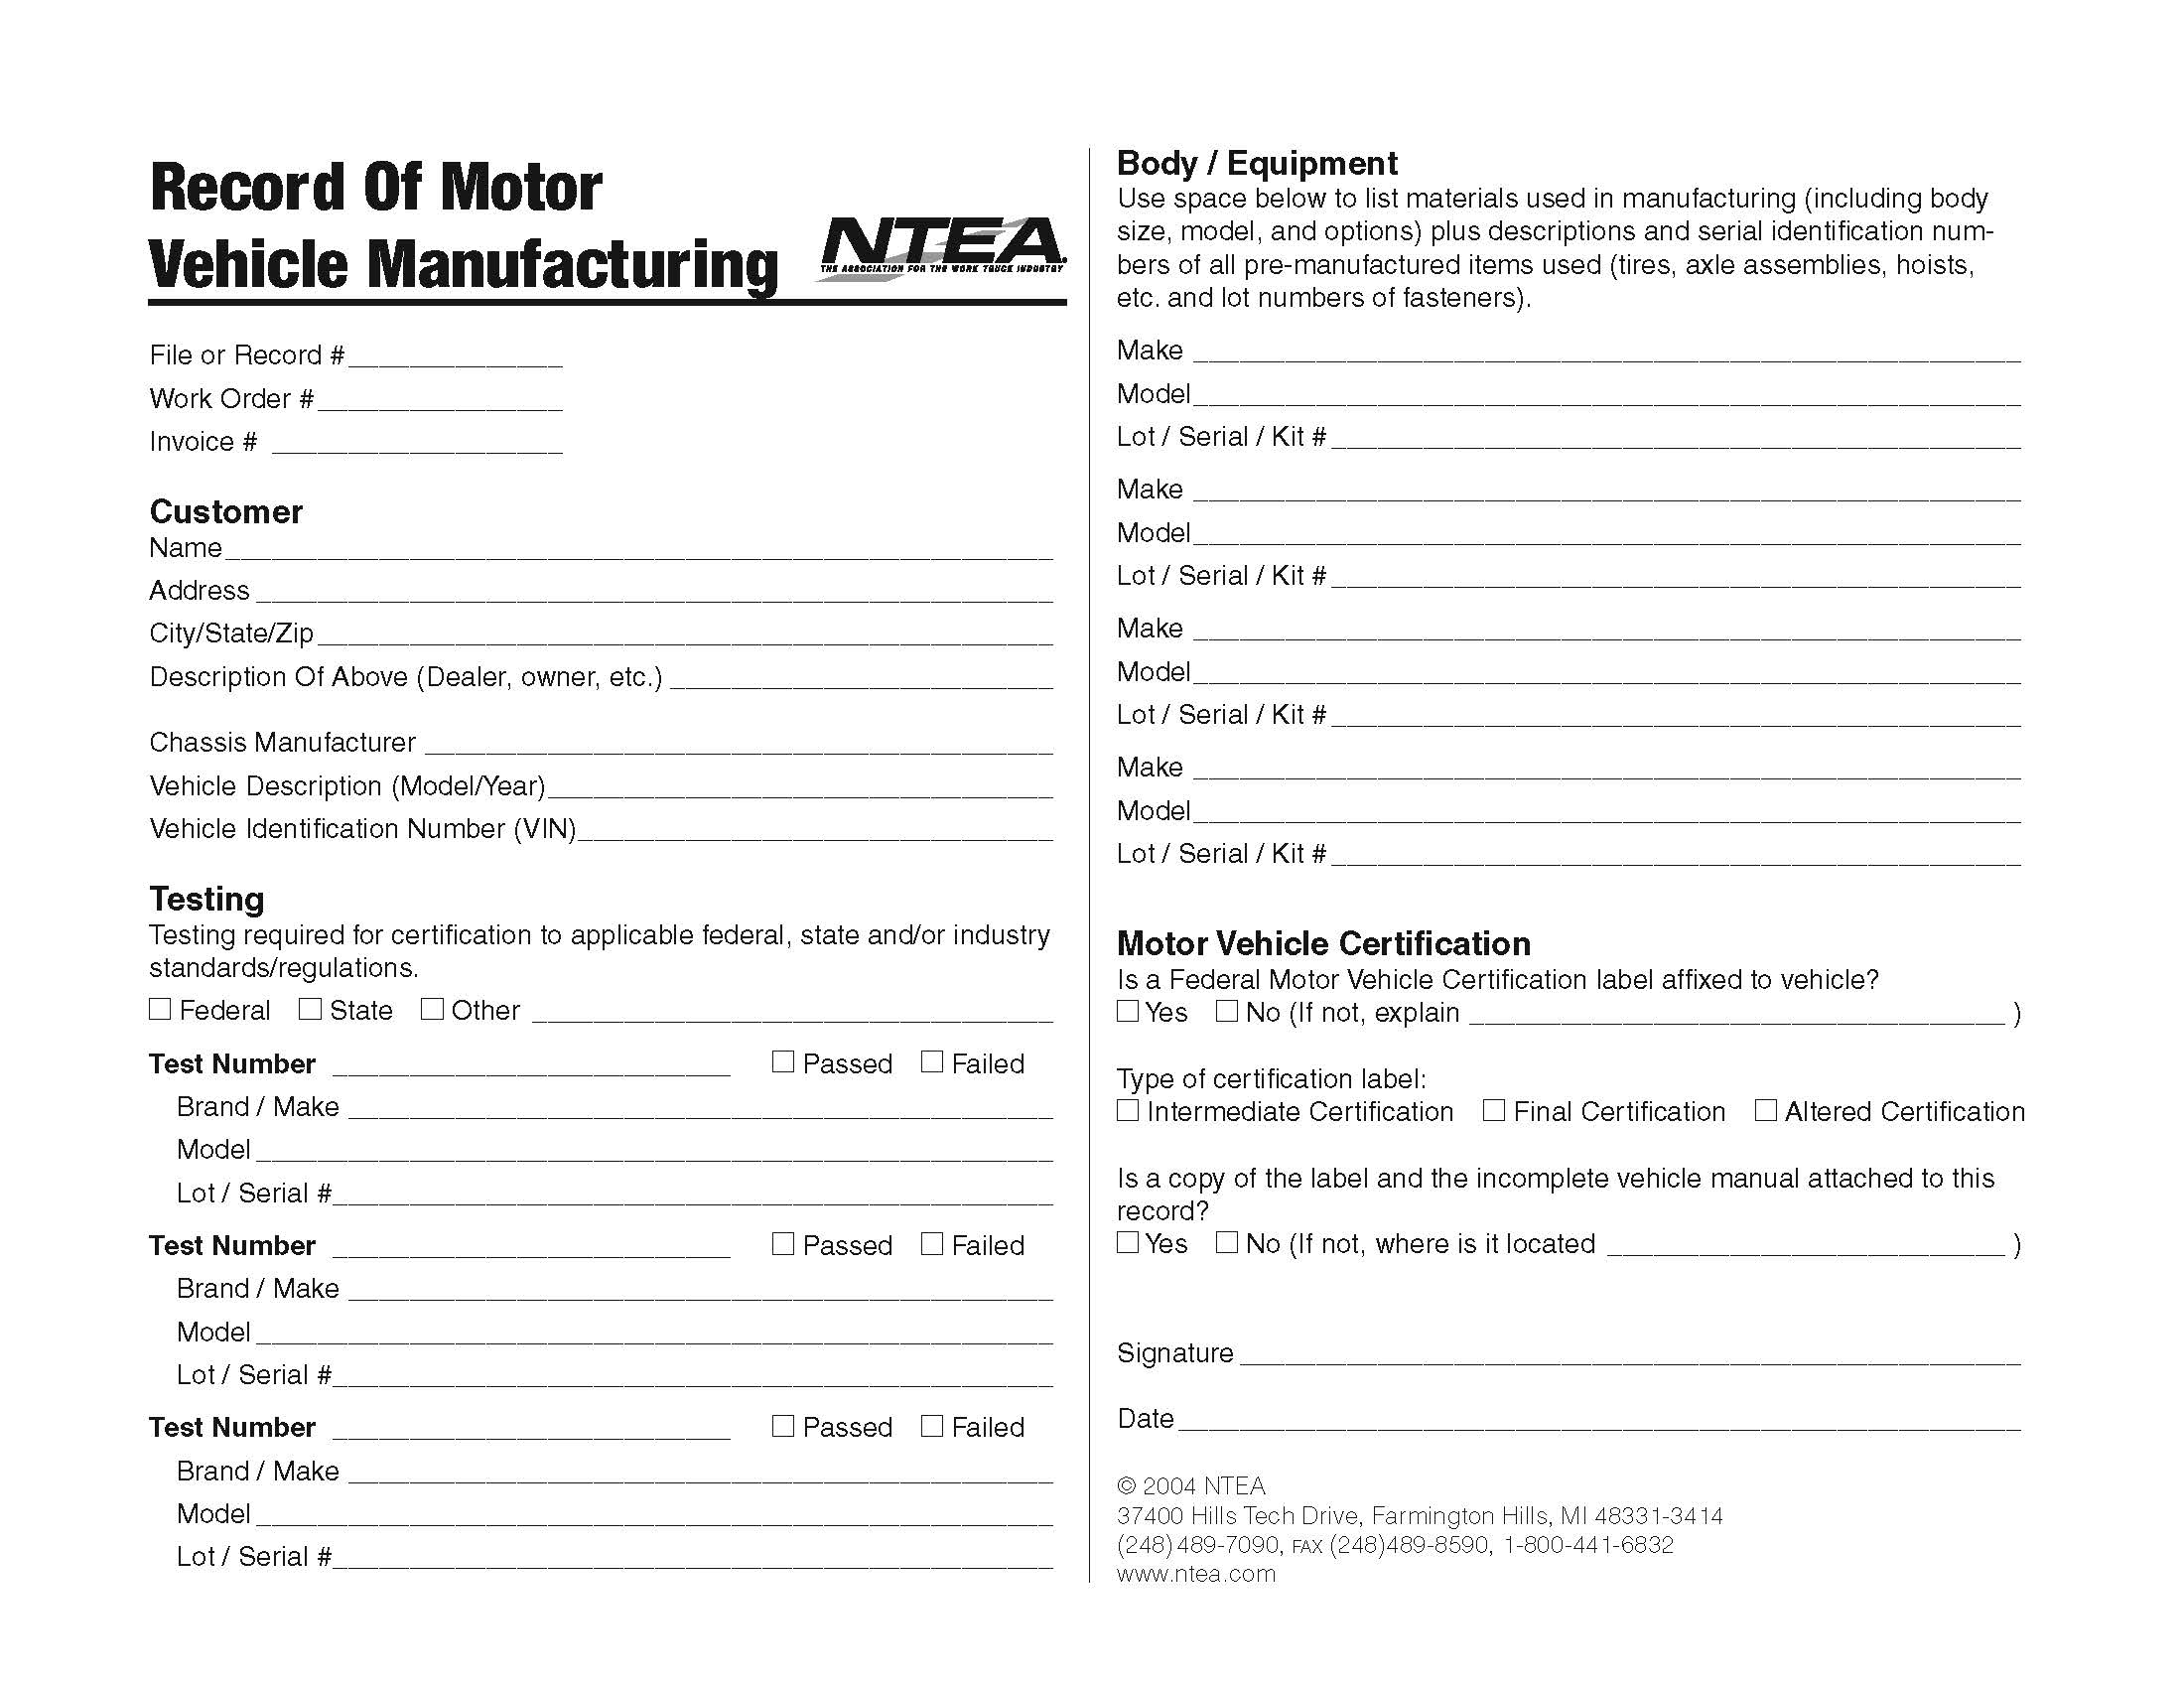 Record of Motor Vehicle Manufacturing Form